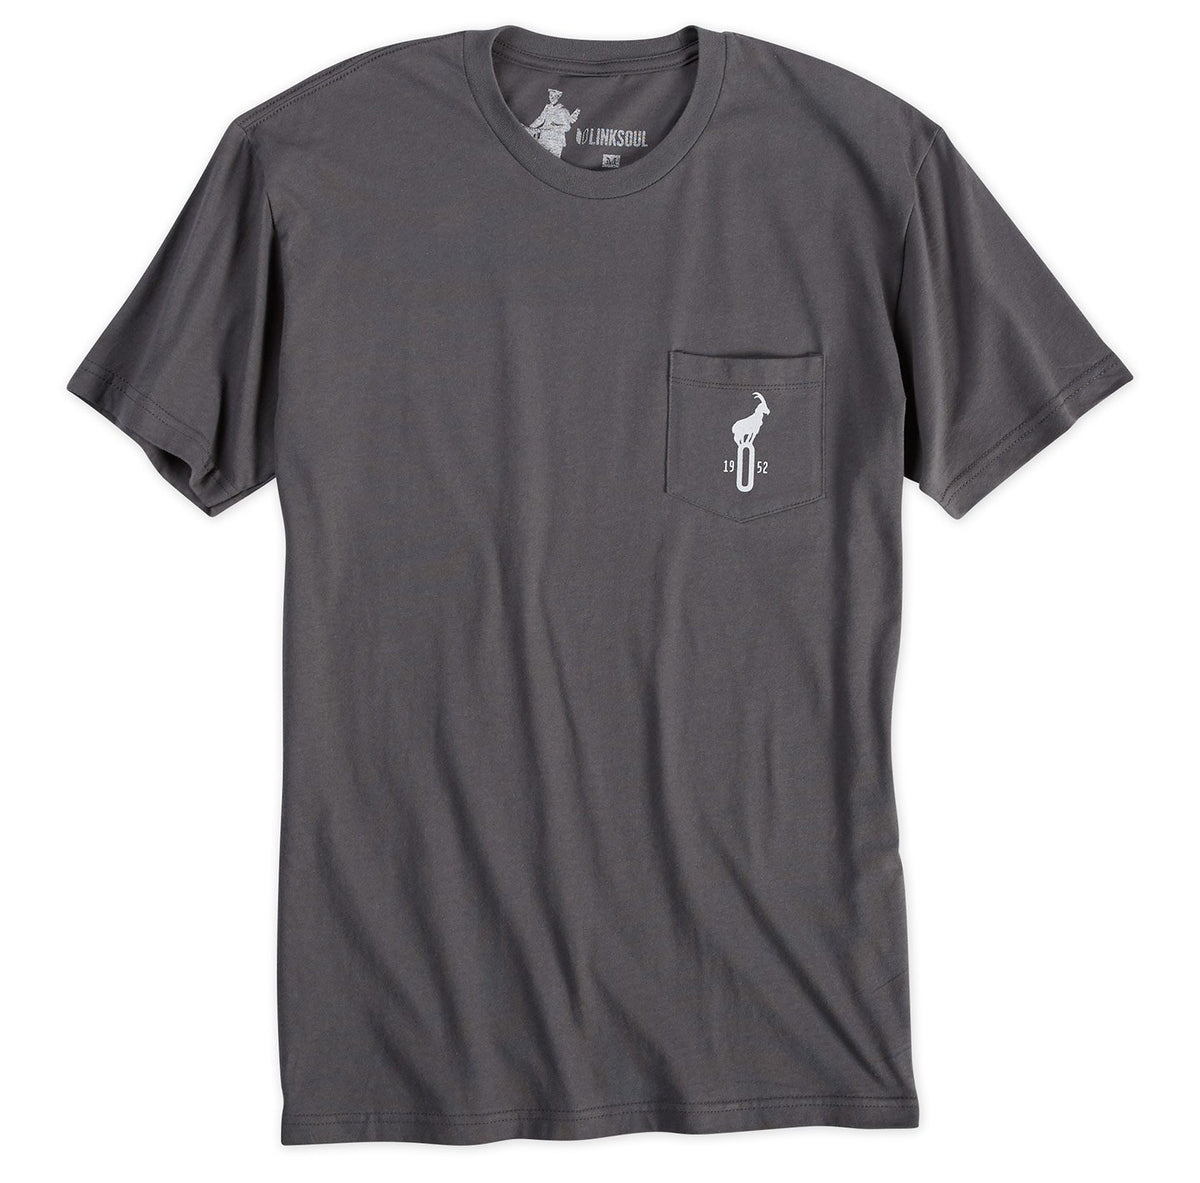 The Pocket Goat Tee